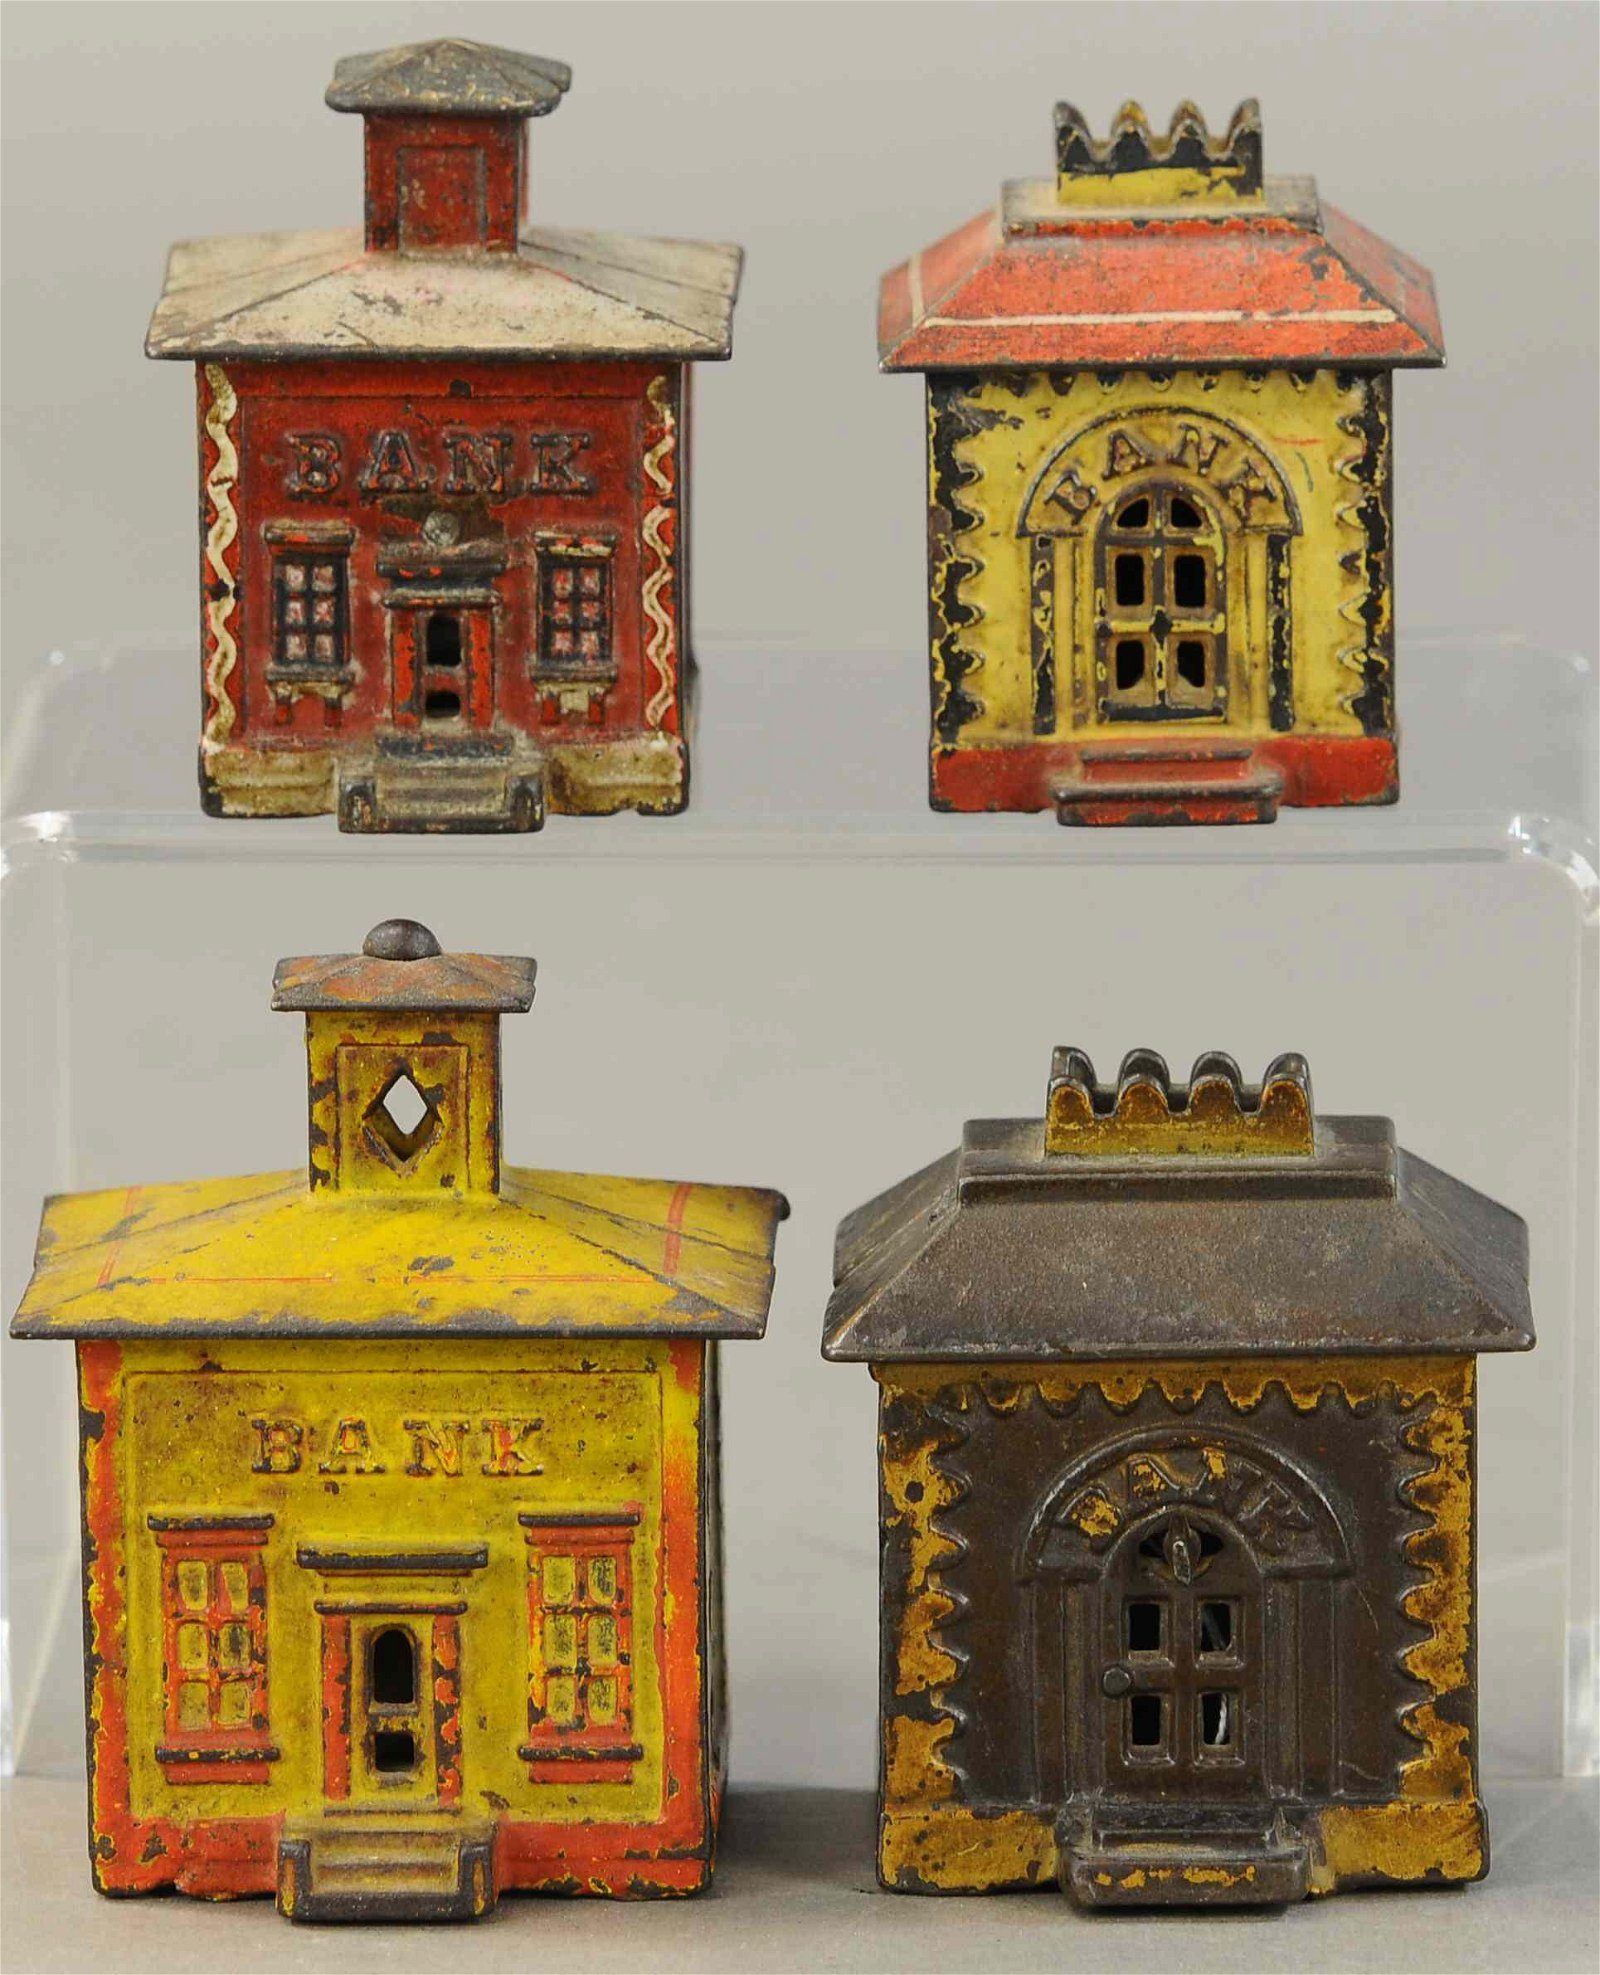 LOT OF 4 PAINTED BUILDING STILL BANKS